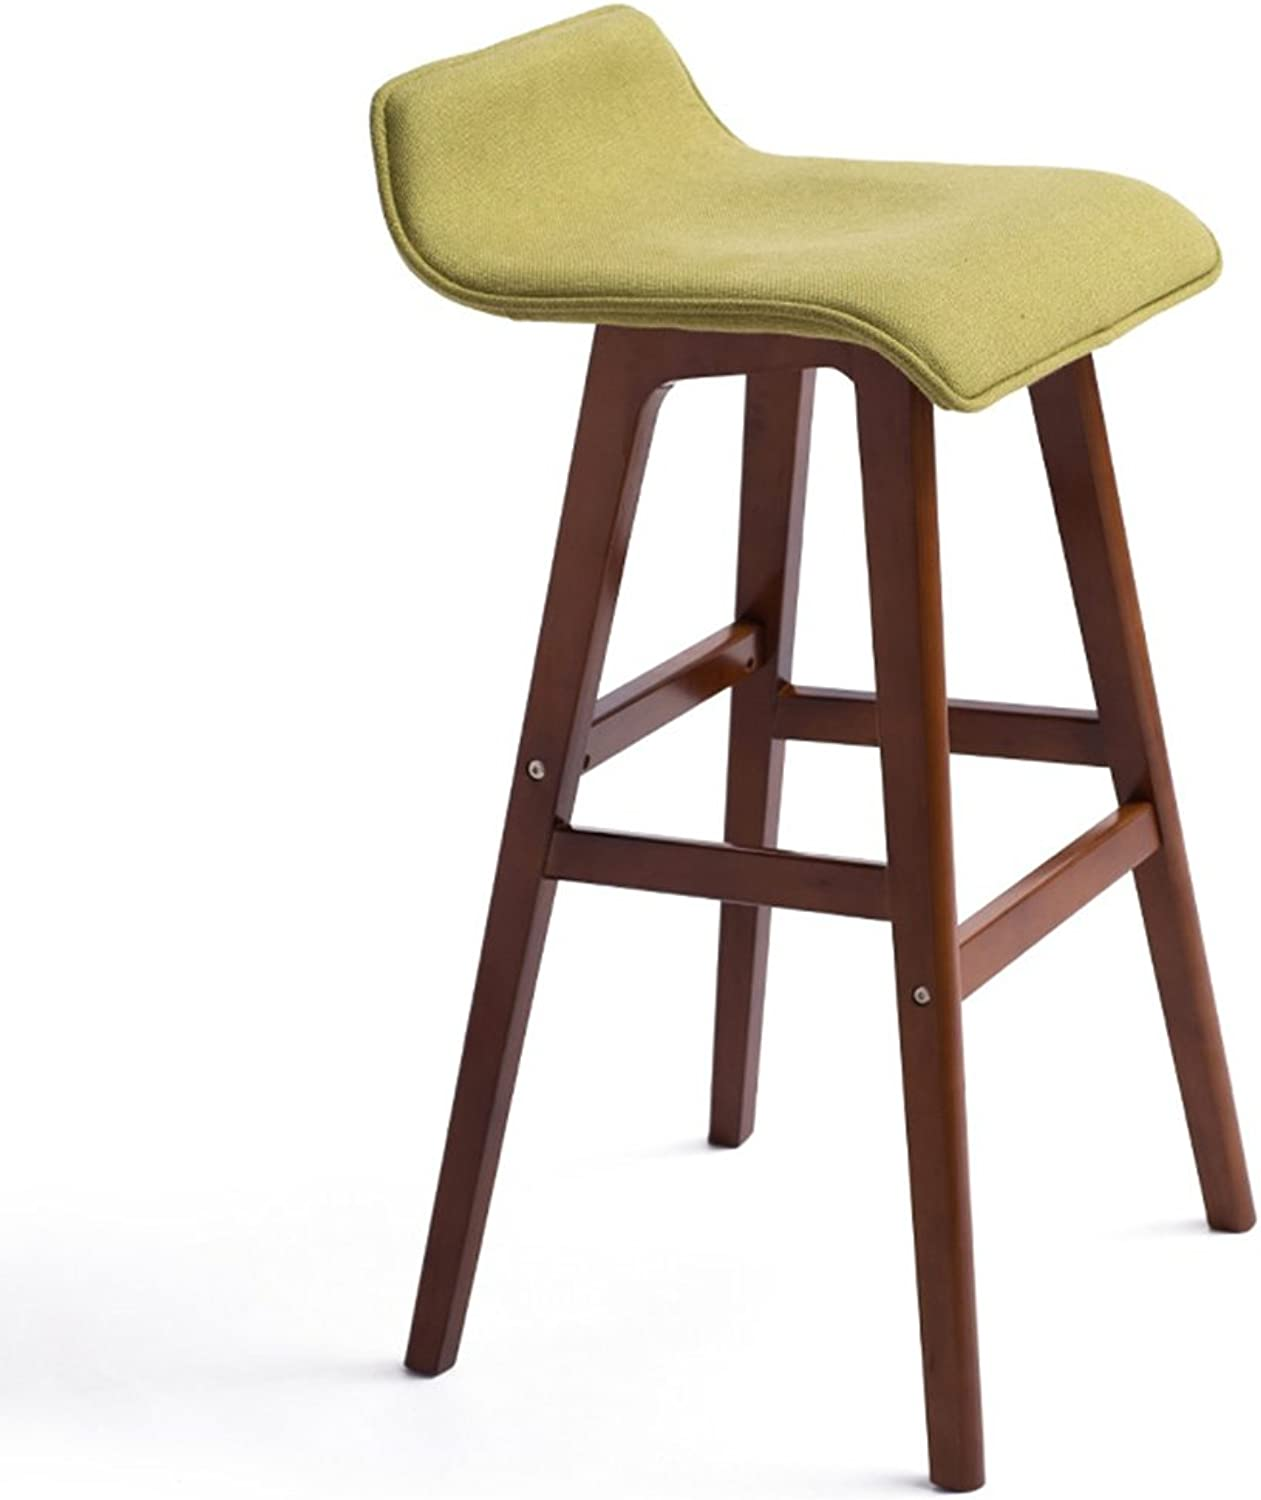 MMM- Minimalistic, Solid Wood, Cotton Linen Cushion Bar Front Desk European Chair Wooden Bench Vintage Bar Stool Height 65cm, and 74cm (color   B, Size   74CM)